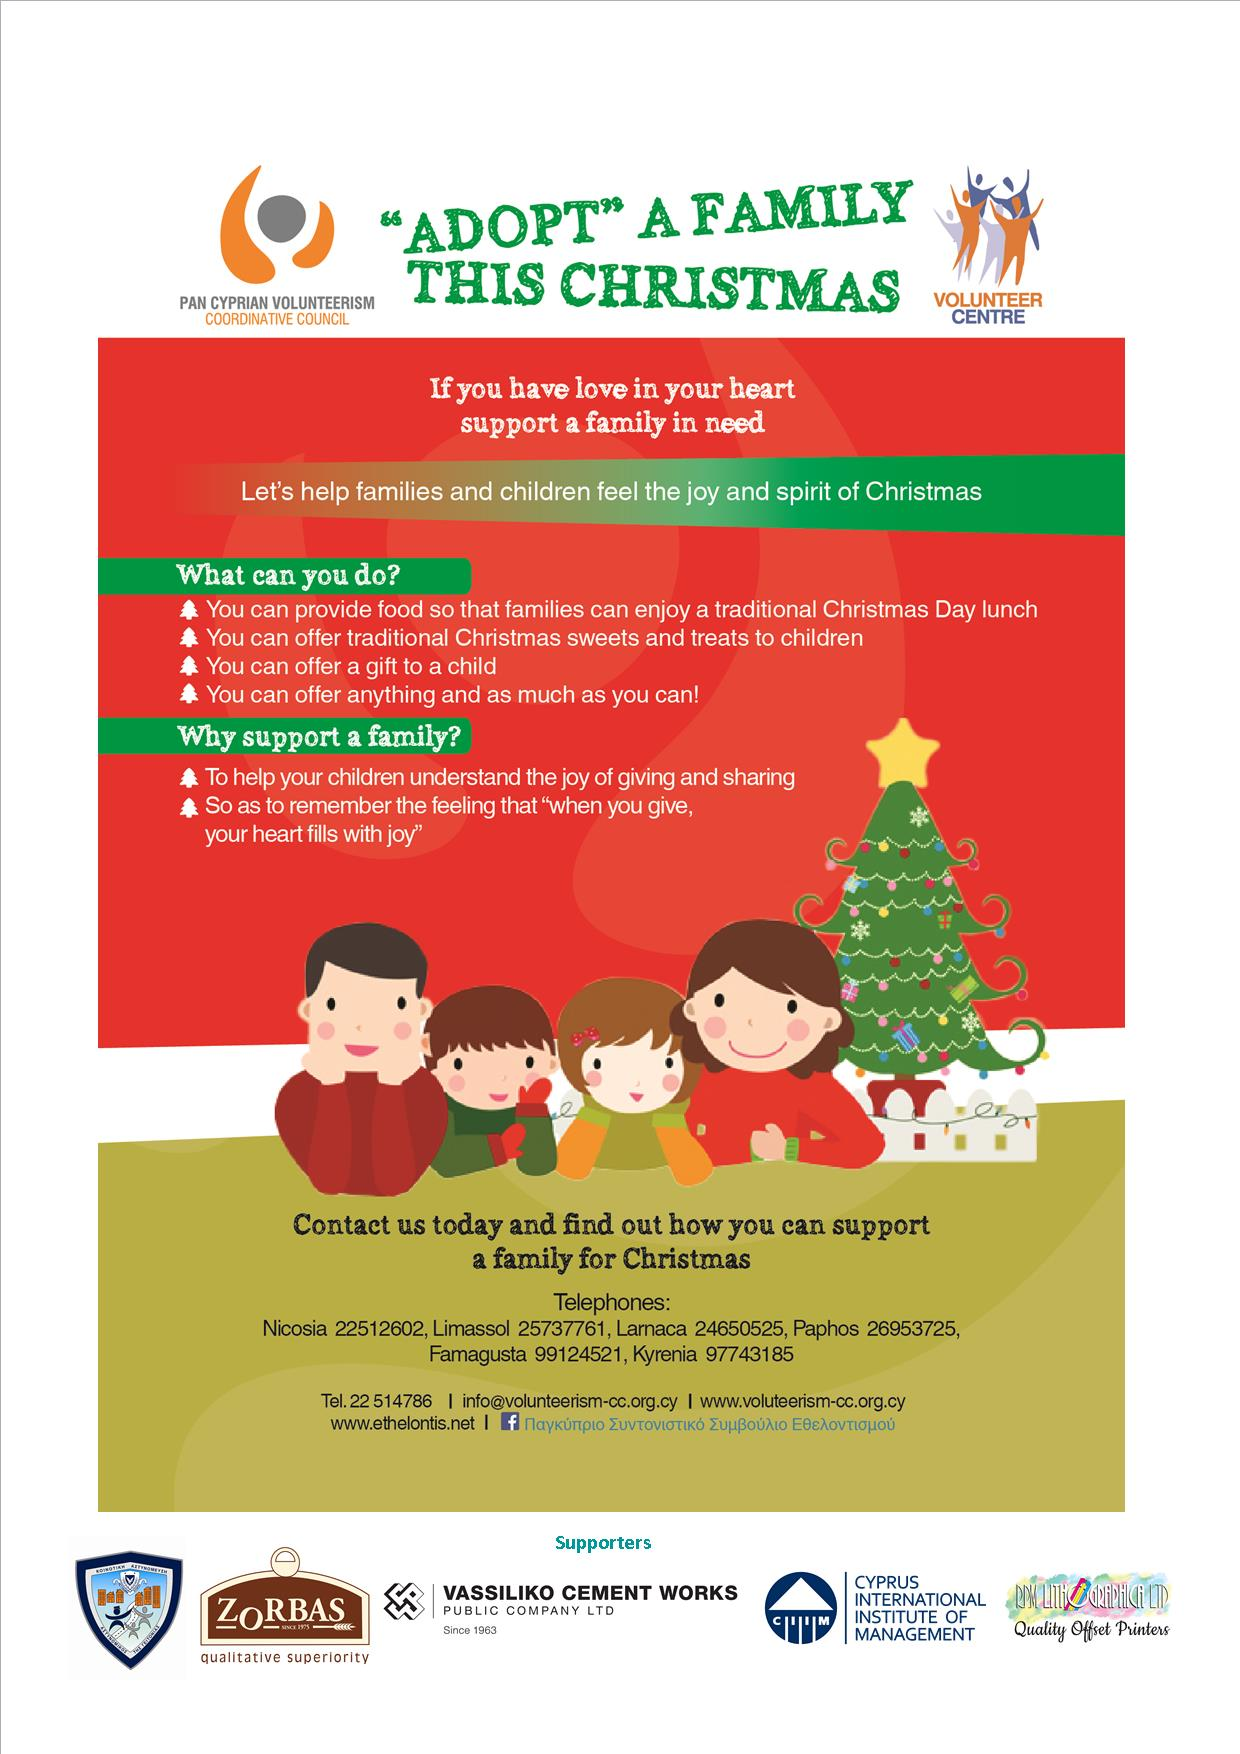 Adopt A Family For Christmas.Vassiliko Cement Works Public Company Ltd Participation In